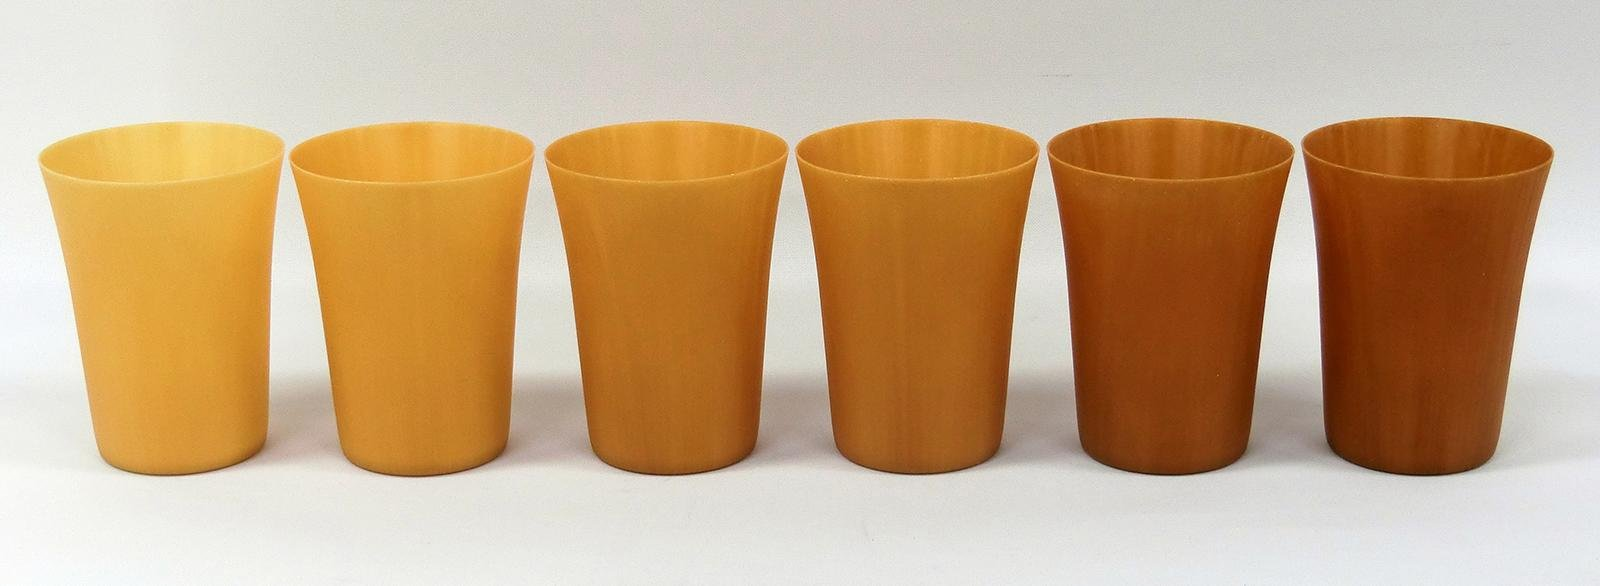 Photo: Reusable cups made from high concentration cellulose fiber molding material.